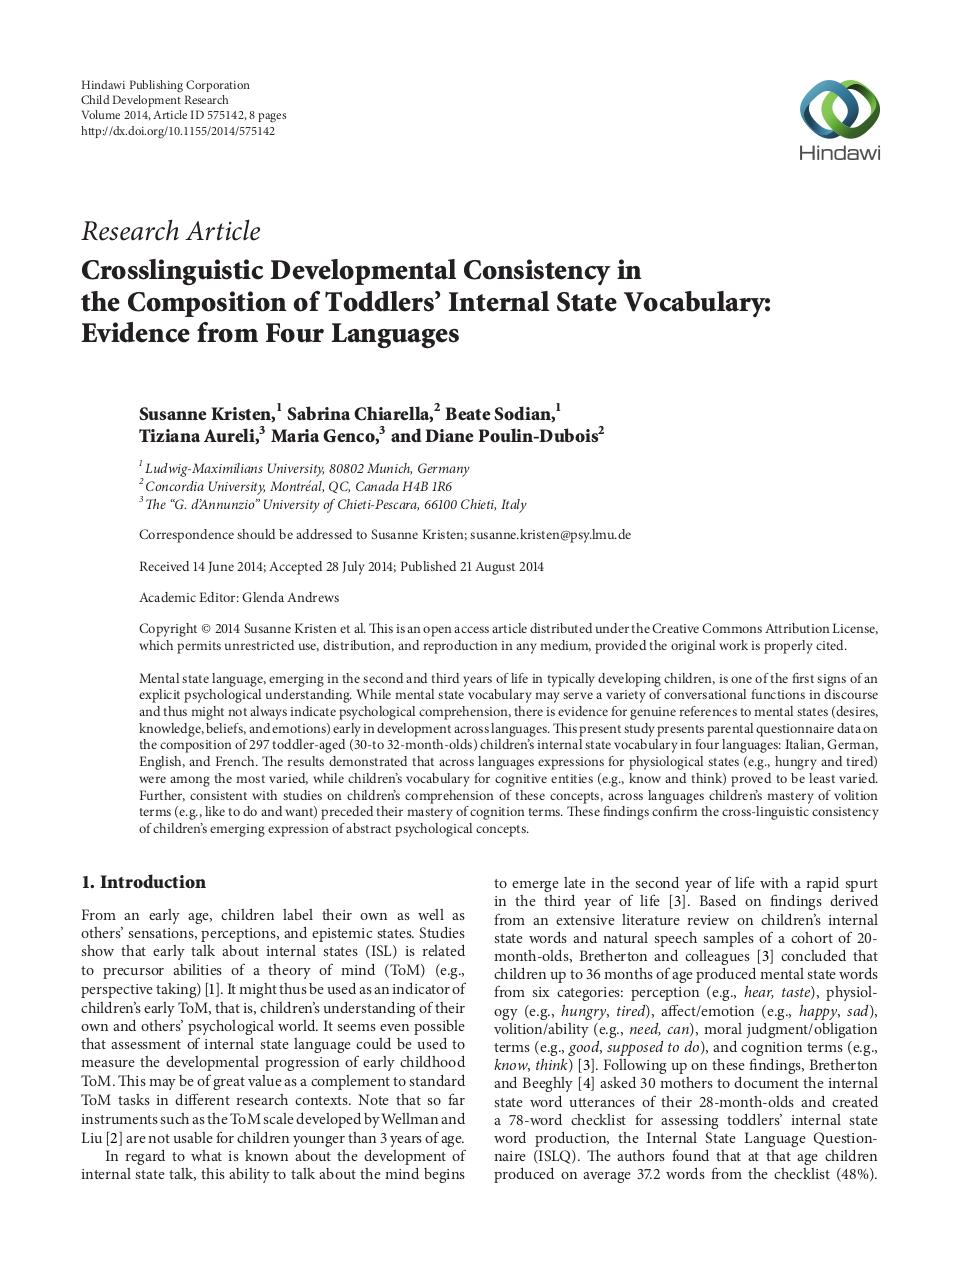 Kristen_crosslinguistic developmental consistency.pdf - page 1/9